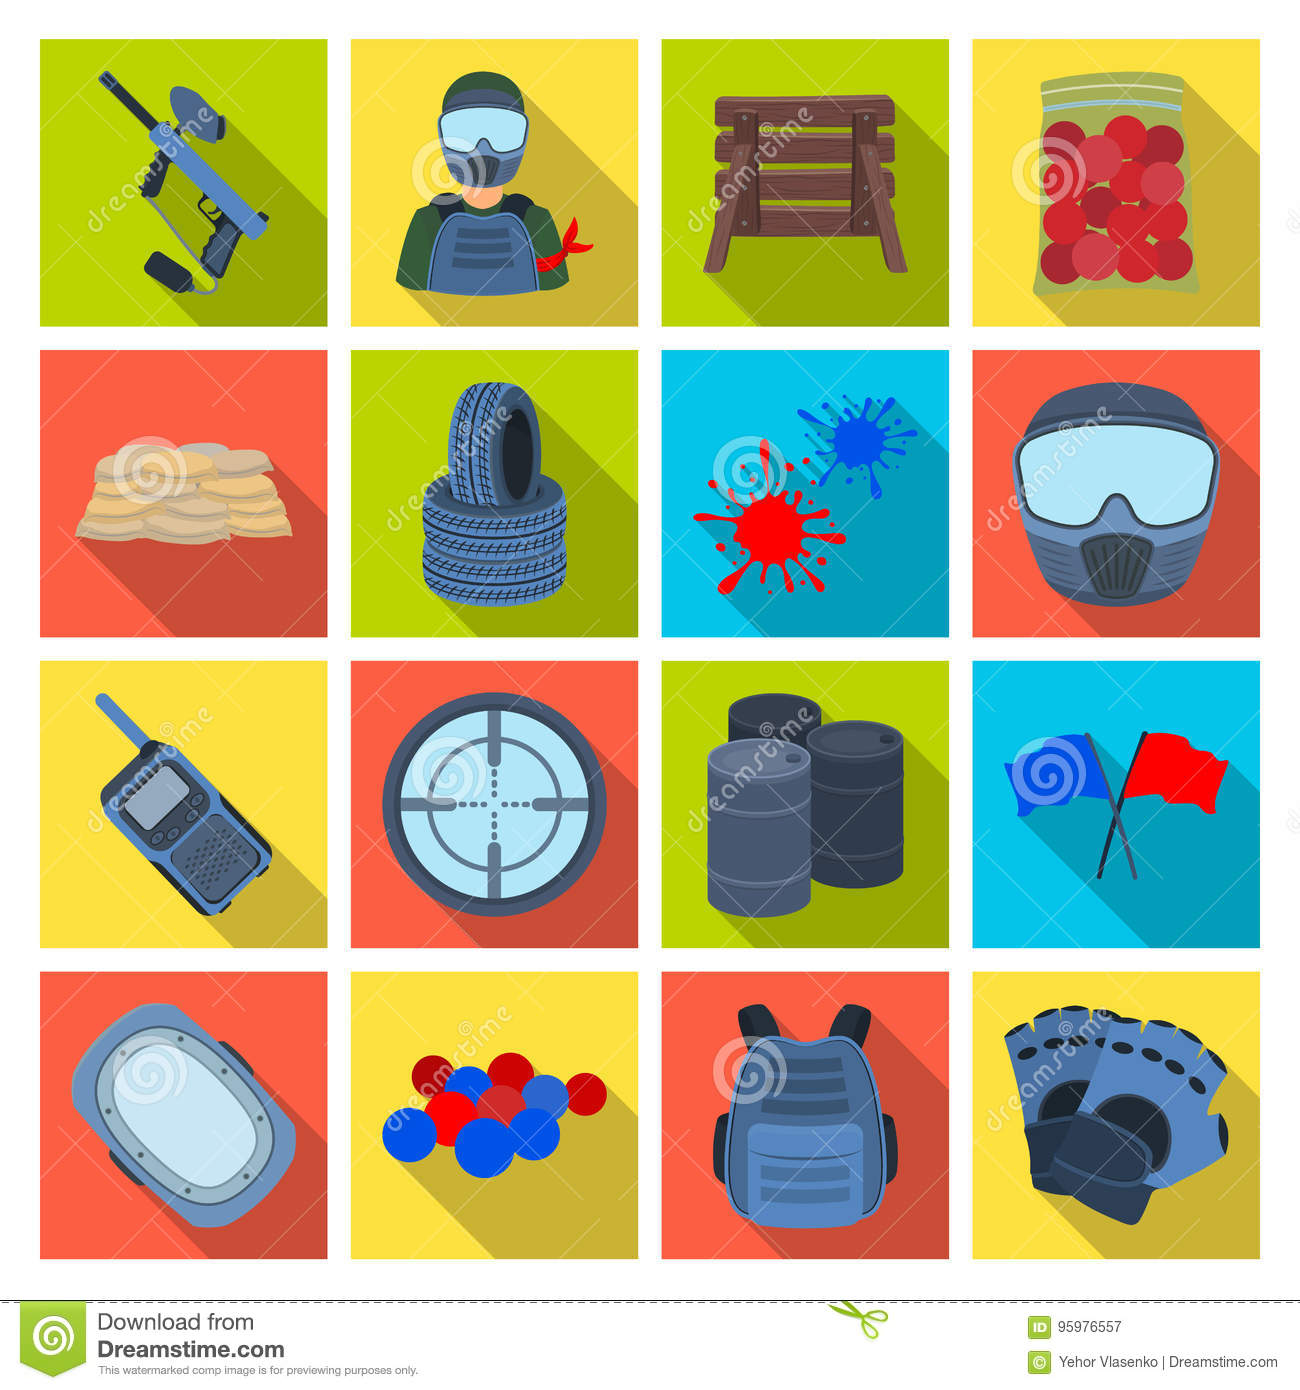 Marker for paintball, equipment, balls and other accessories for the game. Paintball single icon in flat style vector